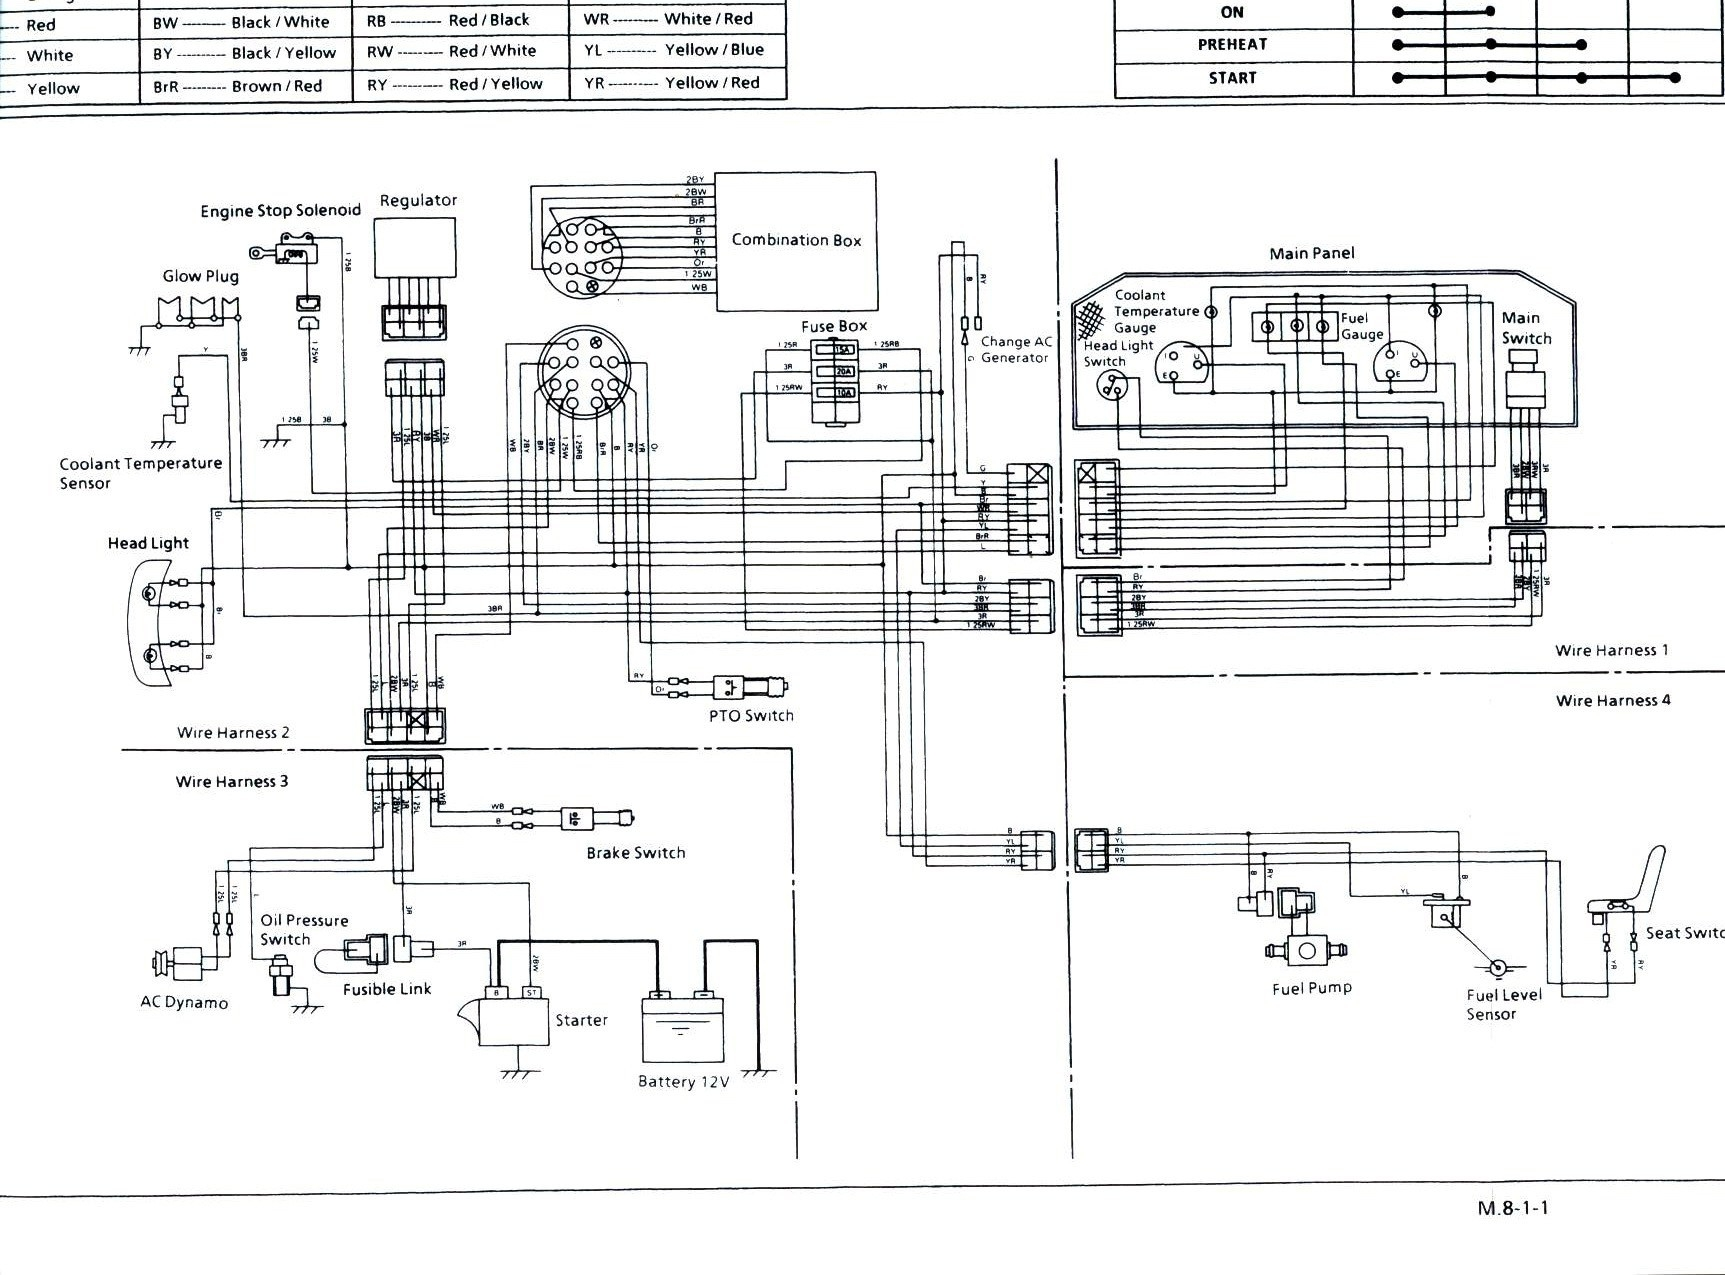 hight resolution of kubota tractor wiring wiring diagram yer b7000 kubota tractor wiring diagram wiring diagram dat kubota tractor